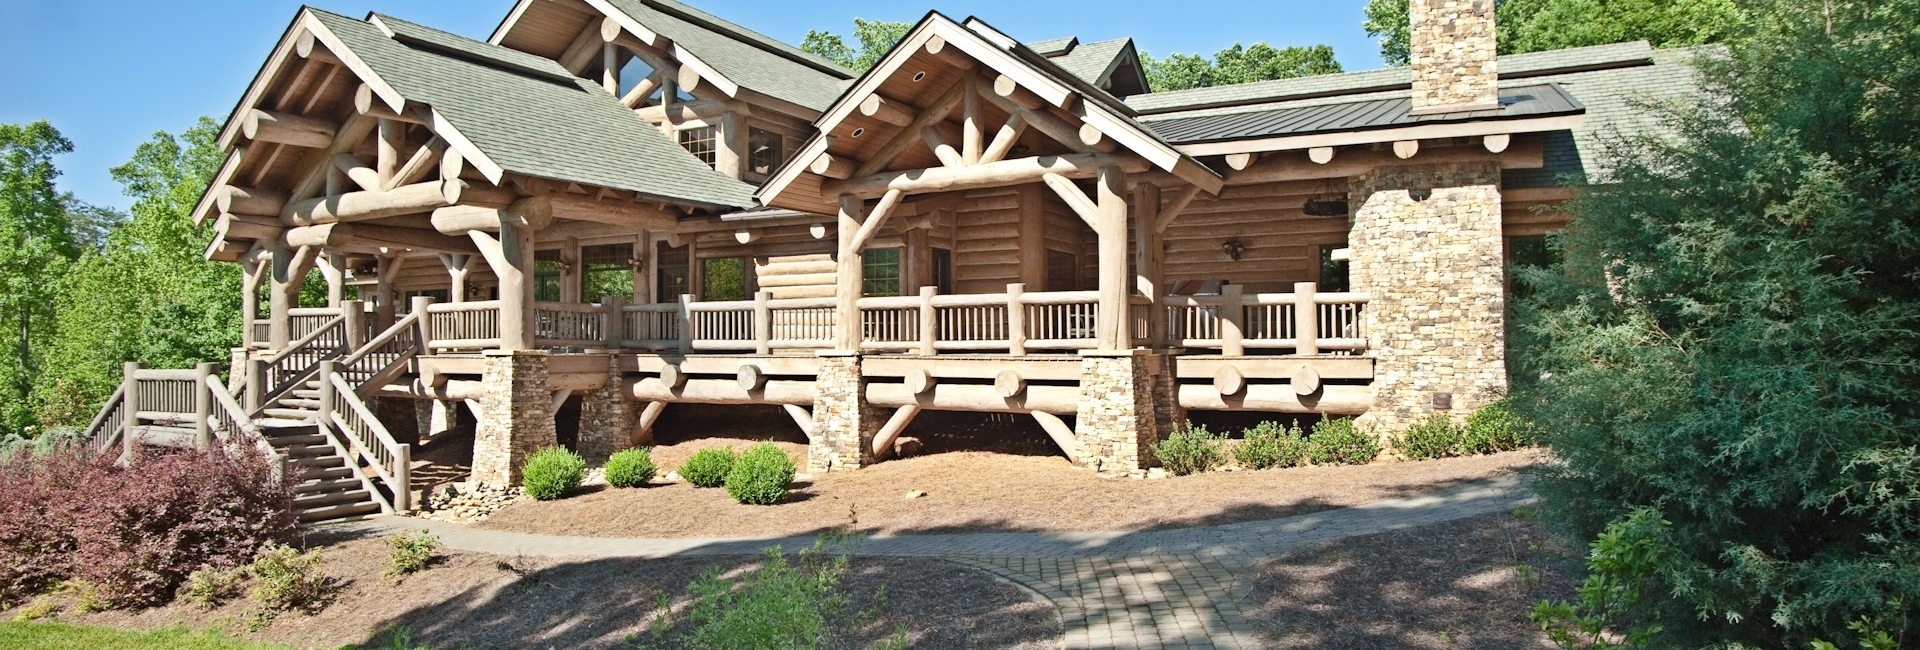 in talking ridge search country for homes timber georgia blairsville ga mountain rock log sale cabin n road united cabins realty